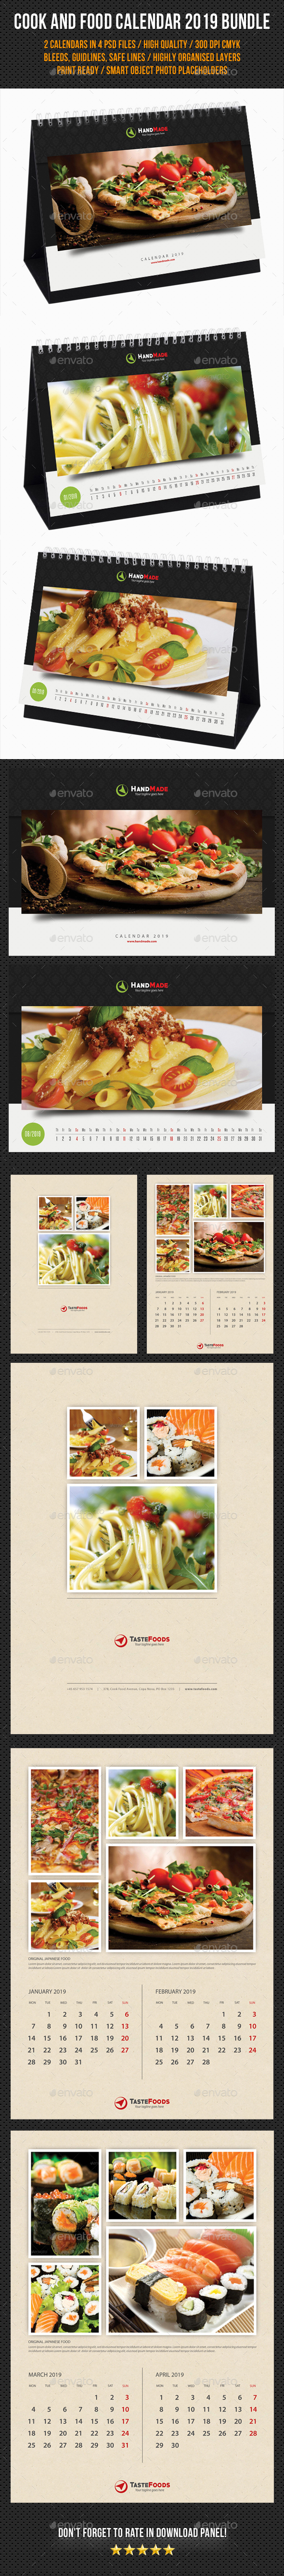 Cook And Food Calendars 2019 Bundle 02 - Calendars Stationery